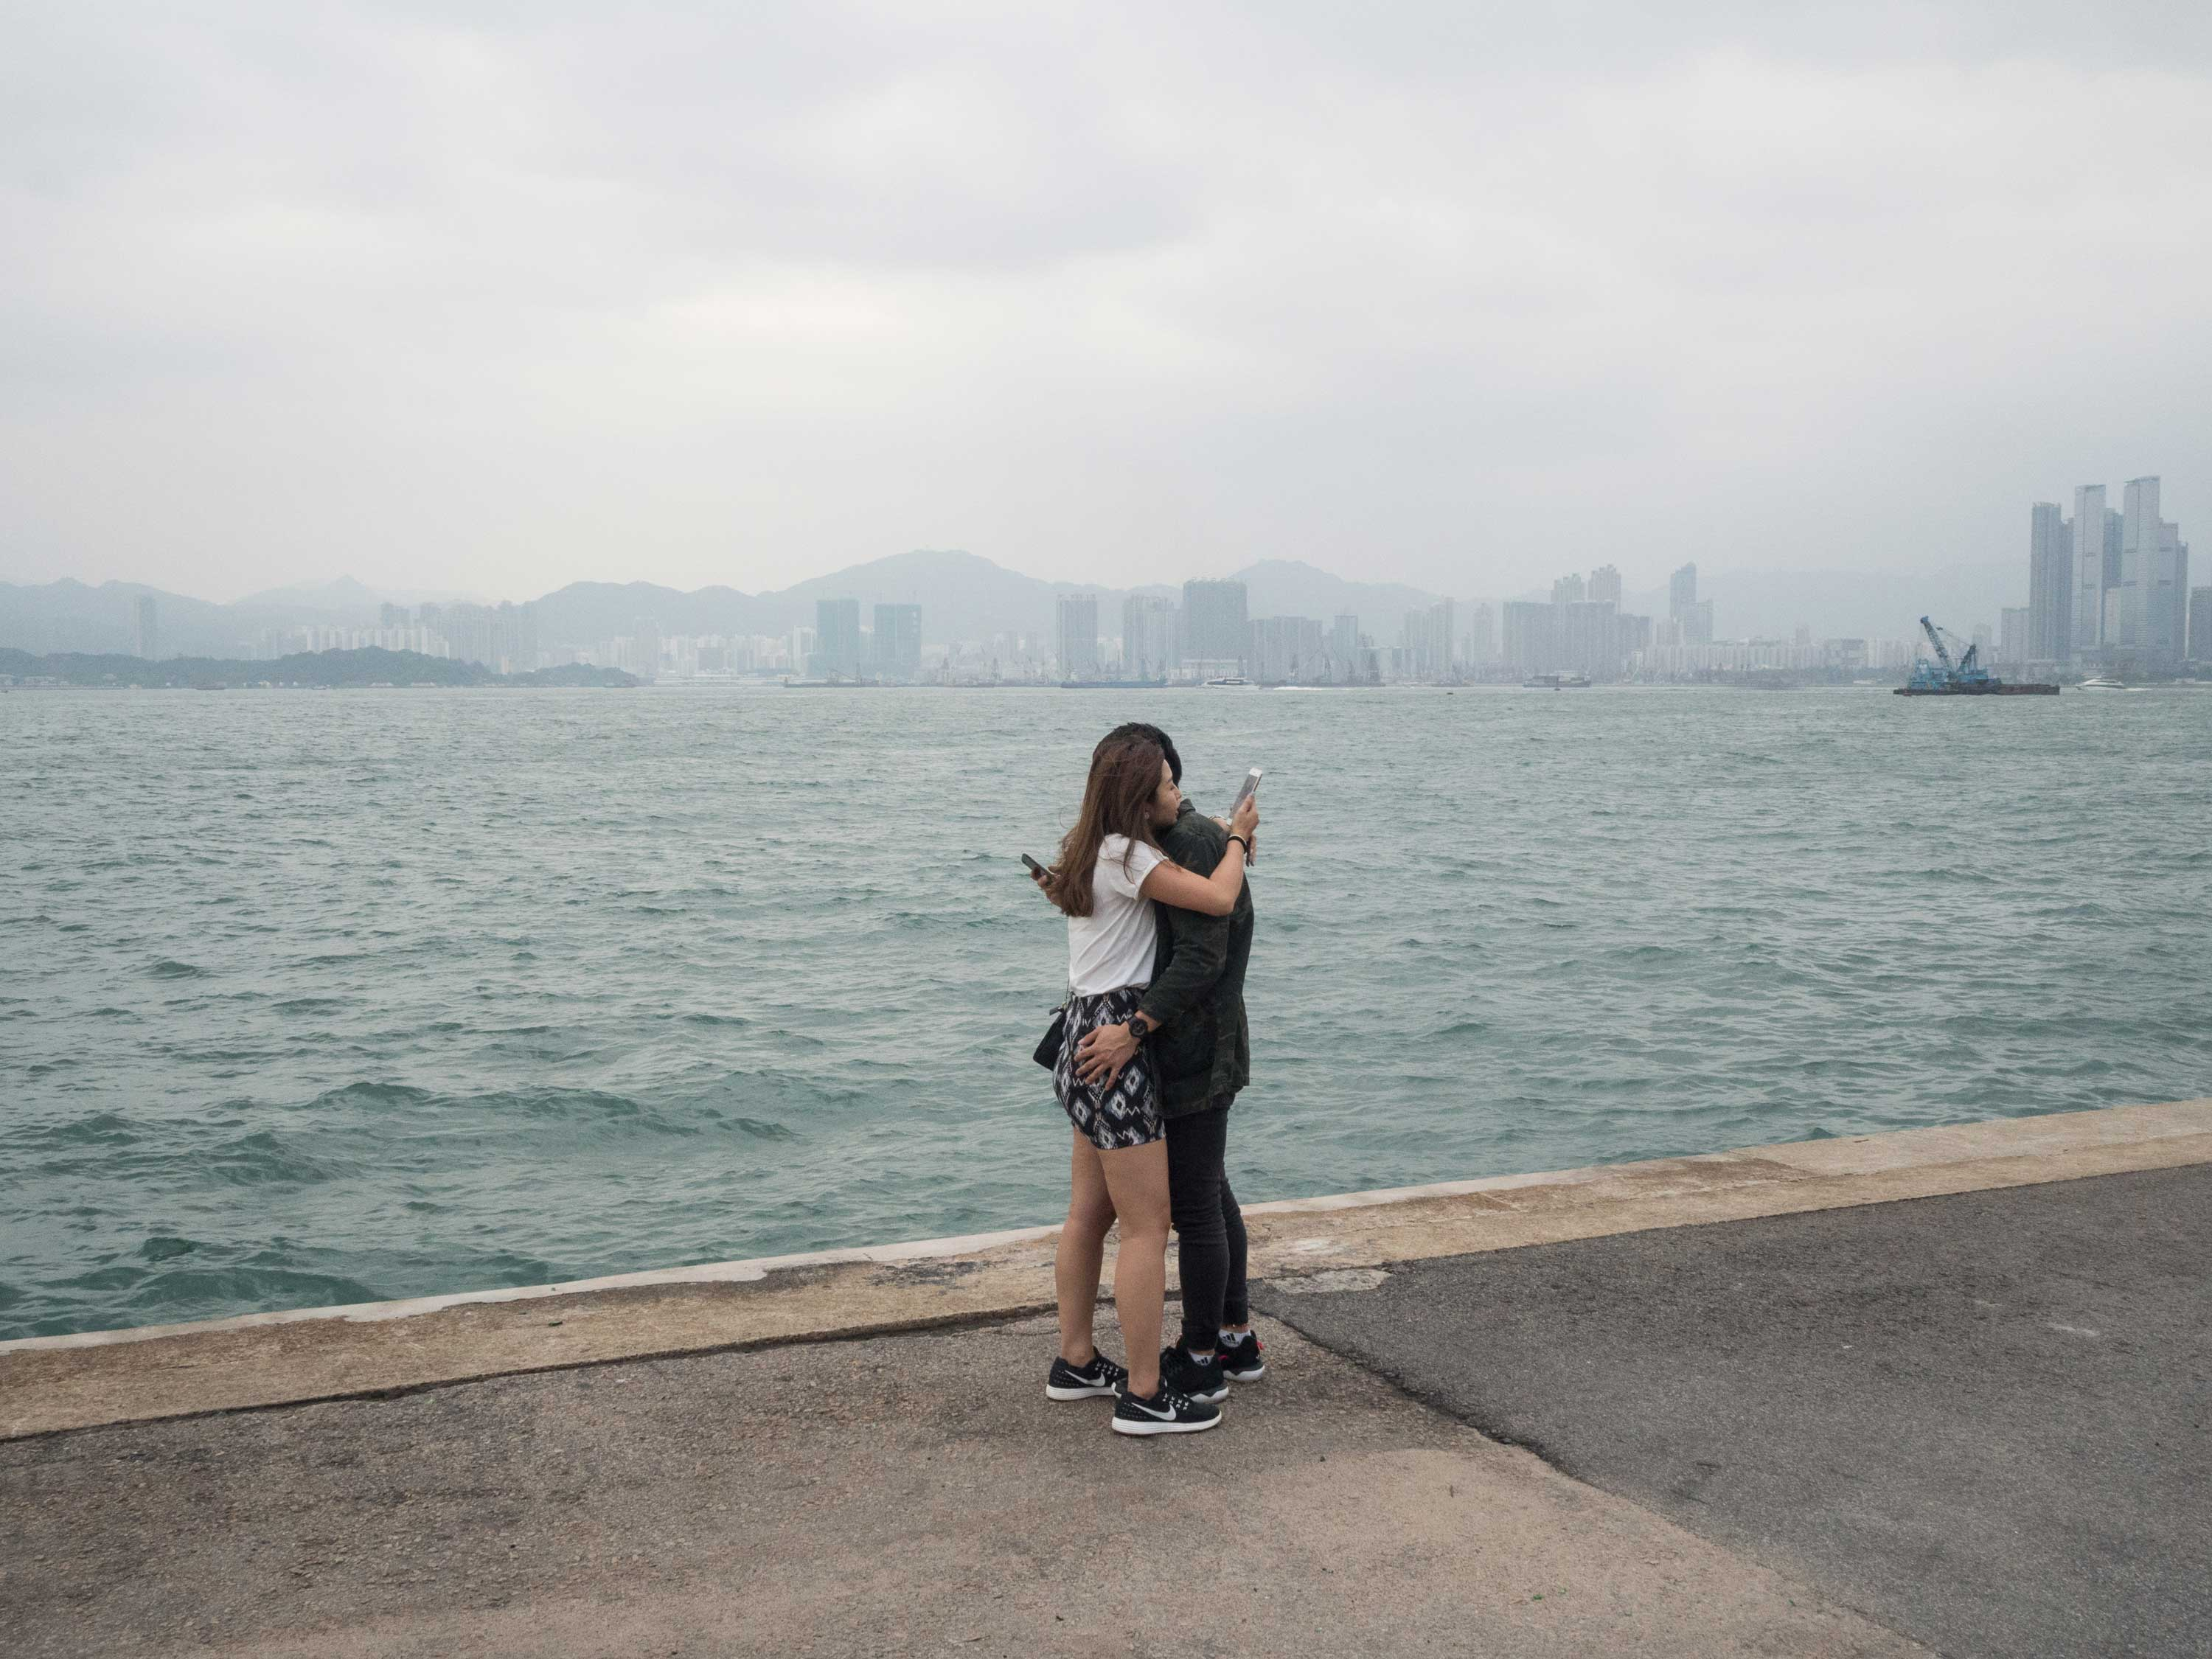 Two young lovers embrace while checking their phones in Hong Kong.